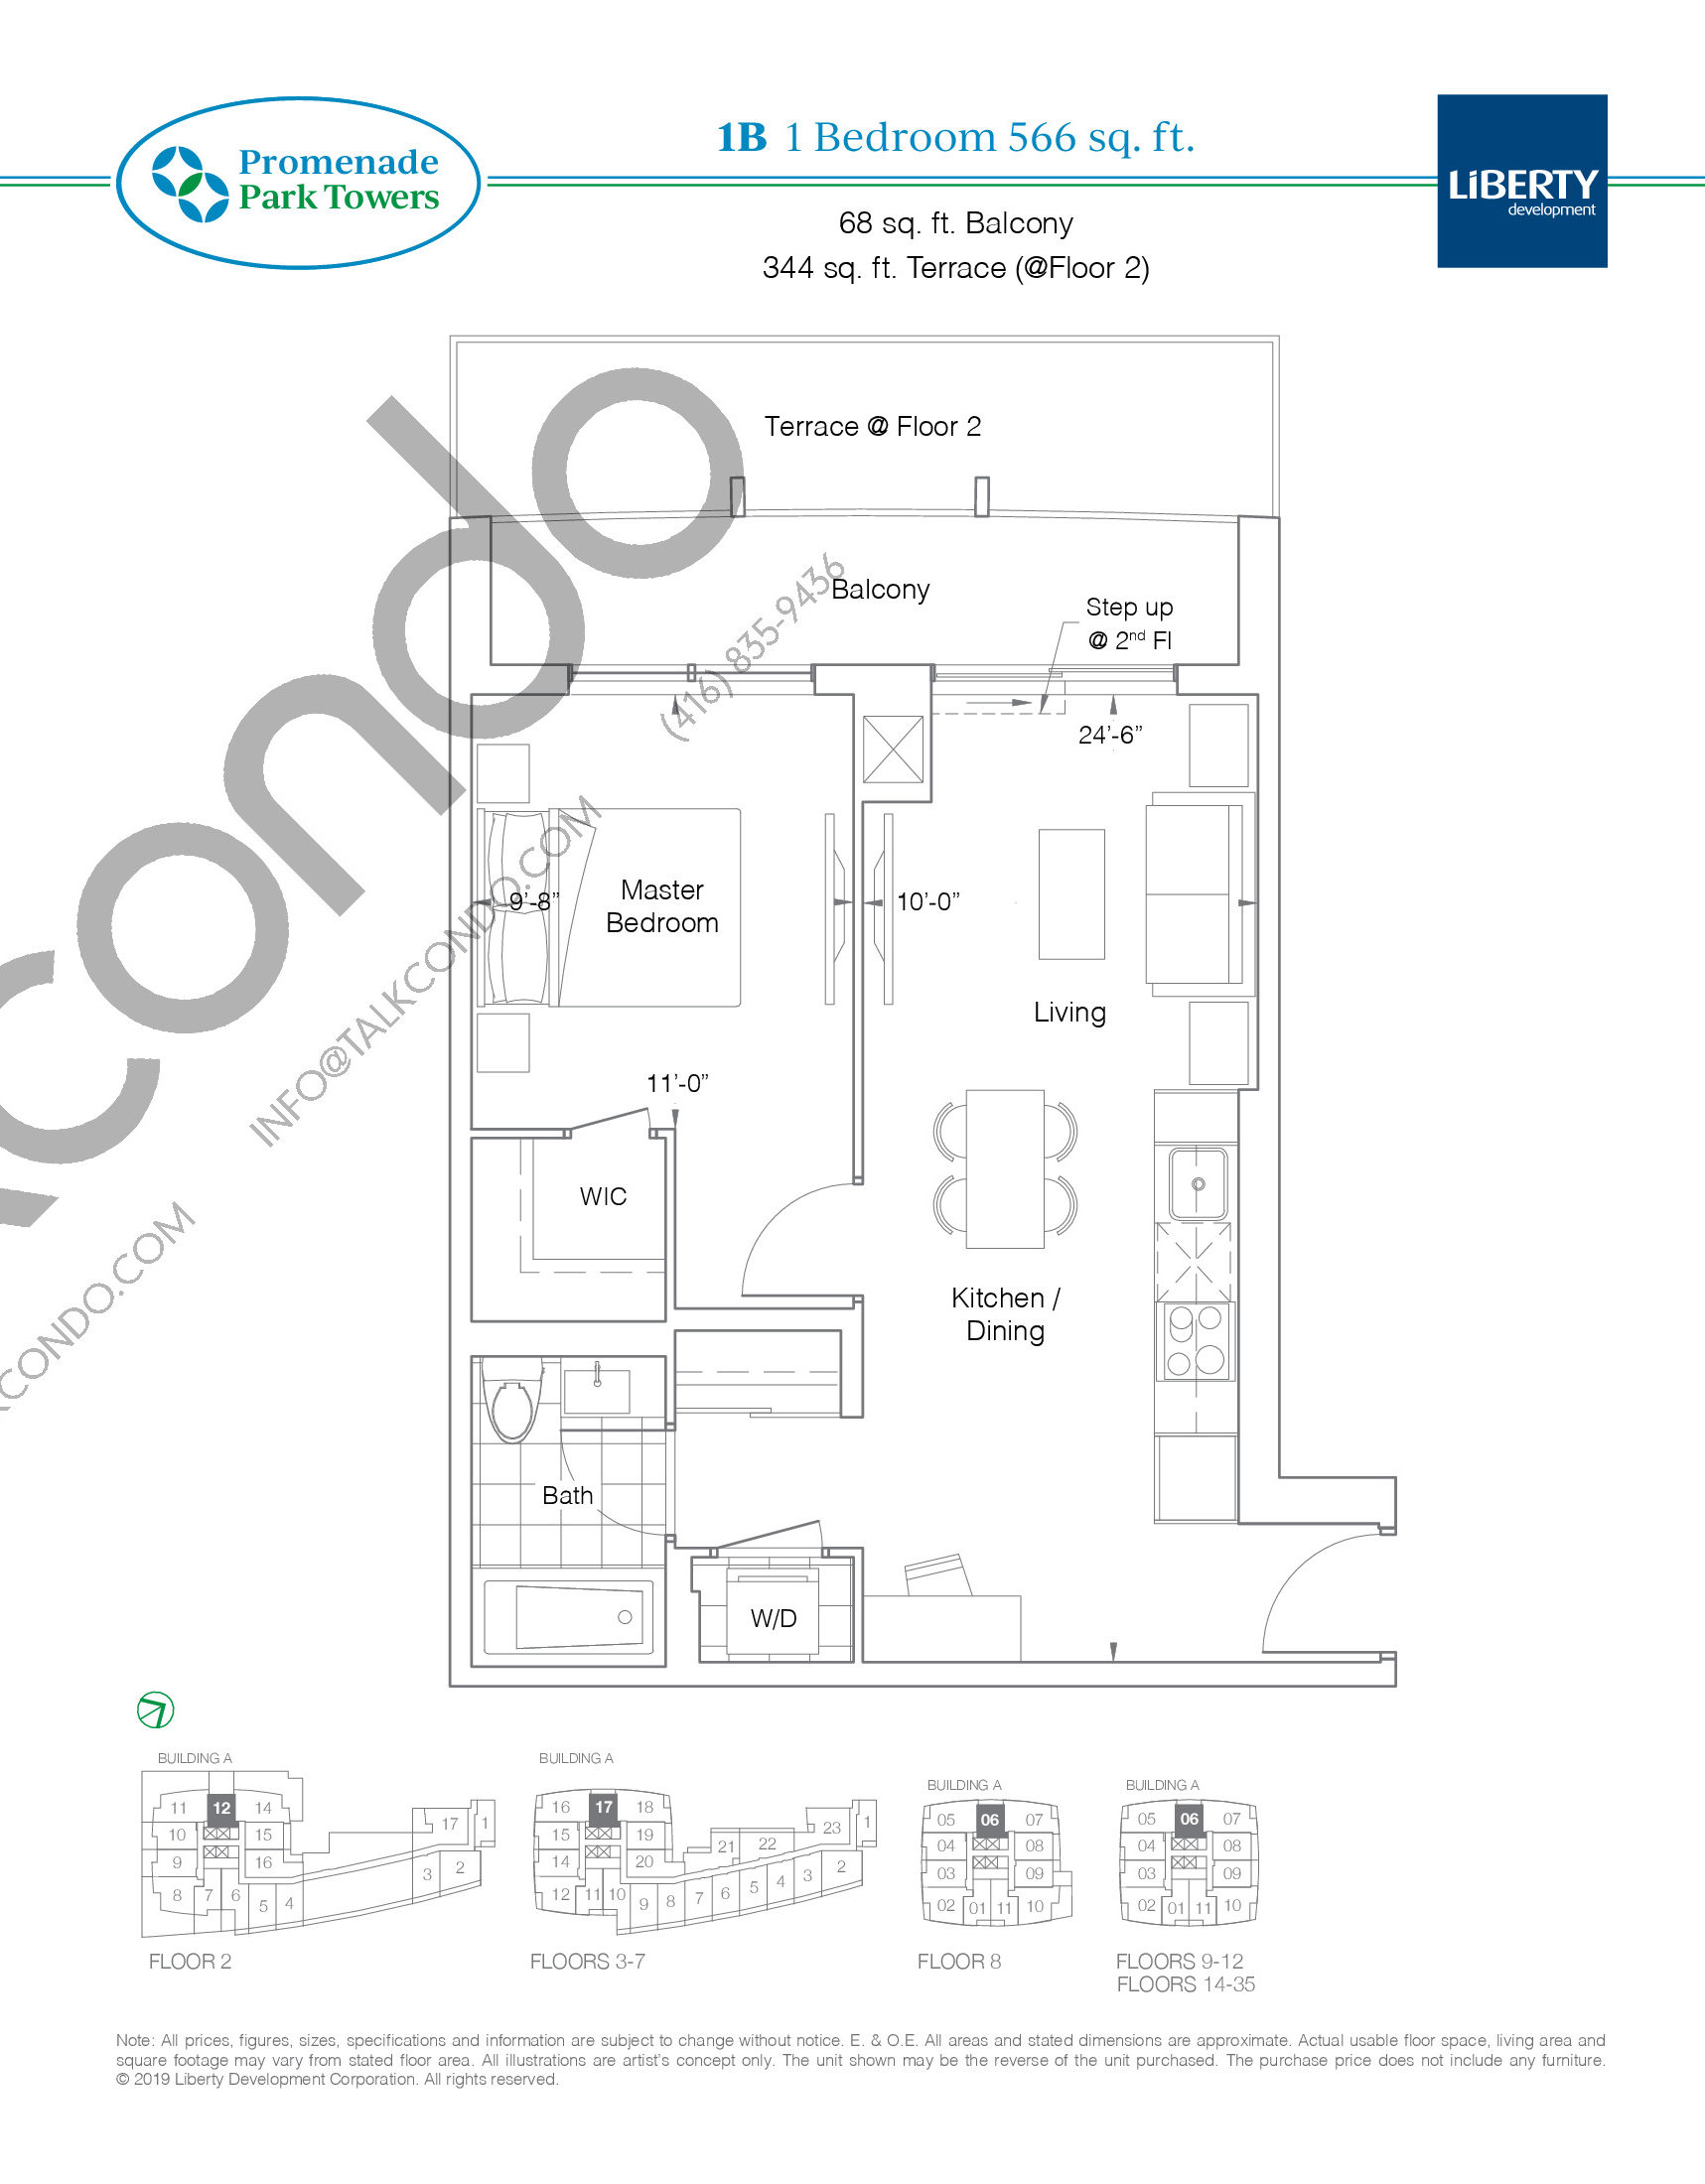 1B Floor Plan at Promenade Park Towers Condos - 566 sq.ft